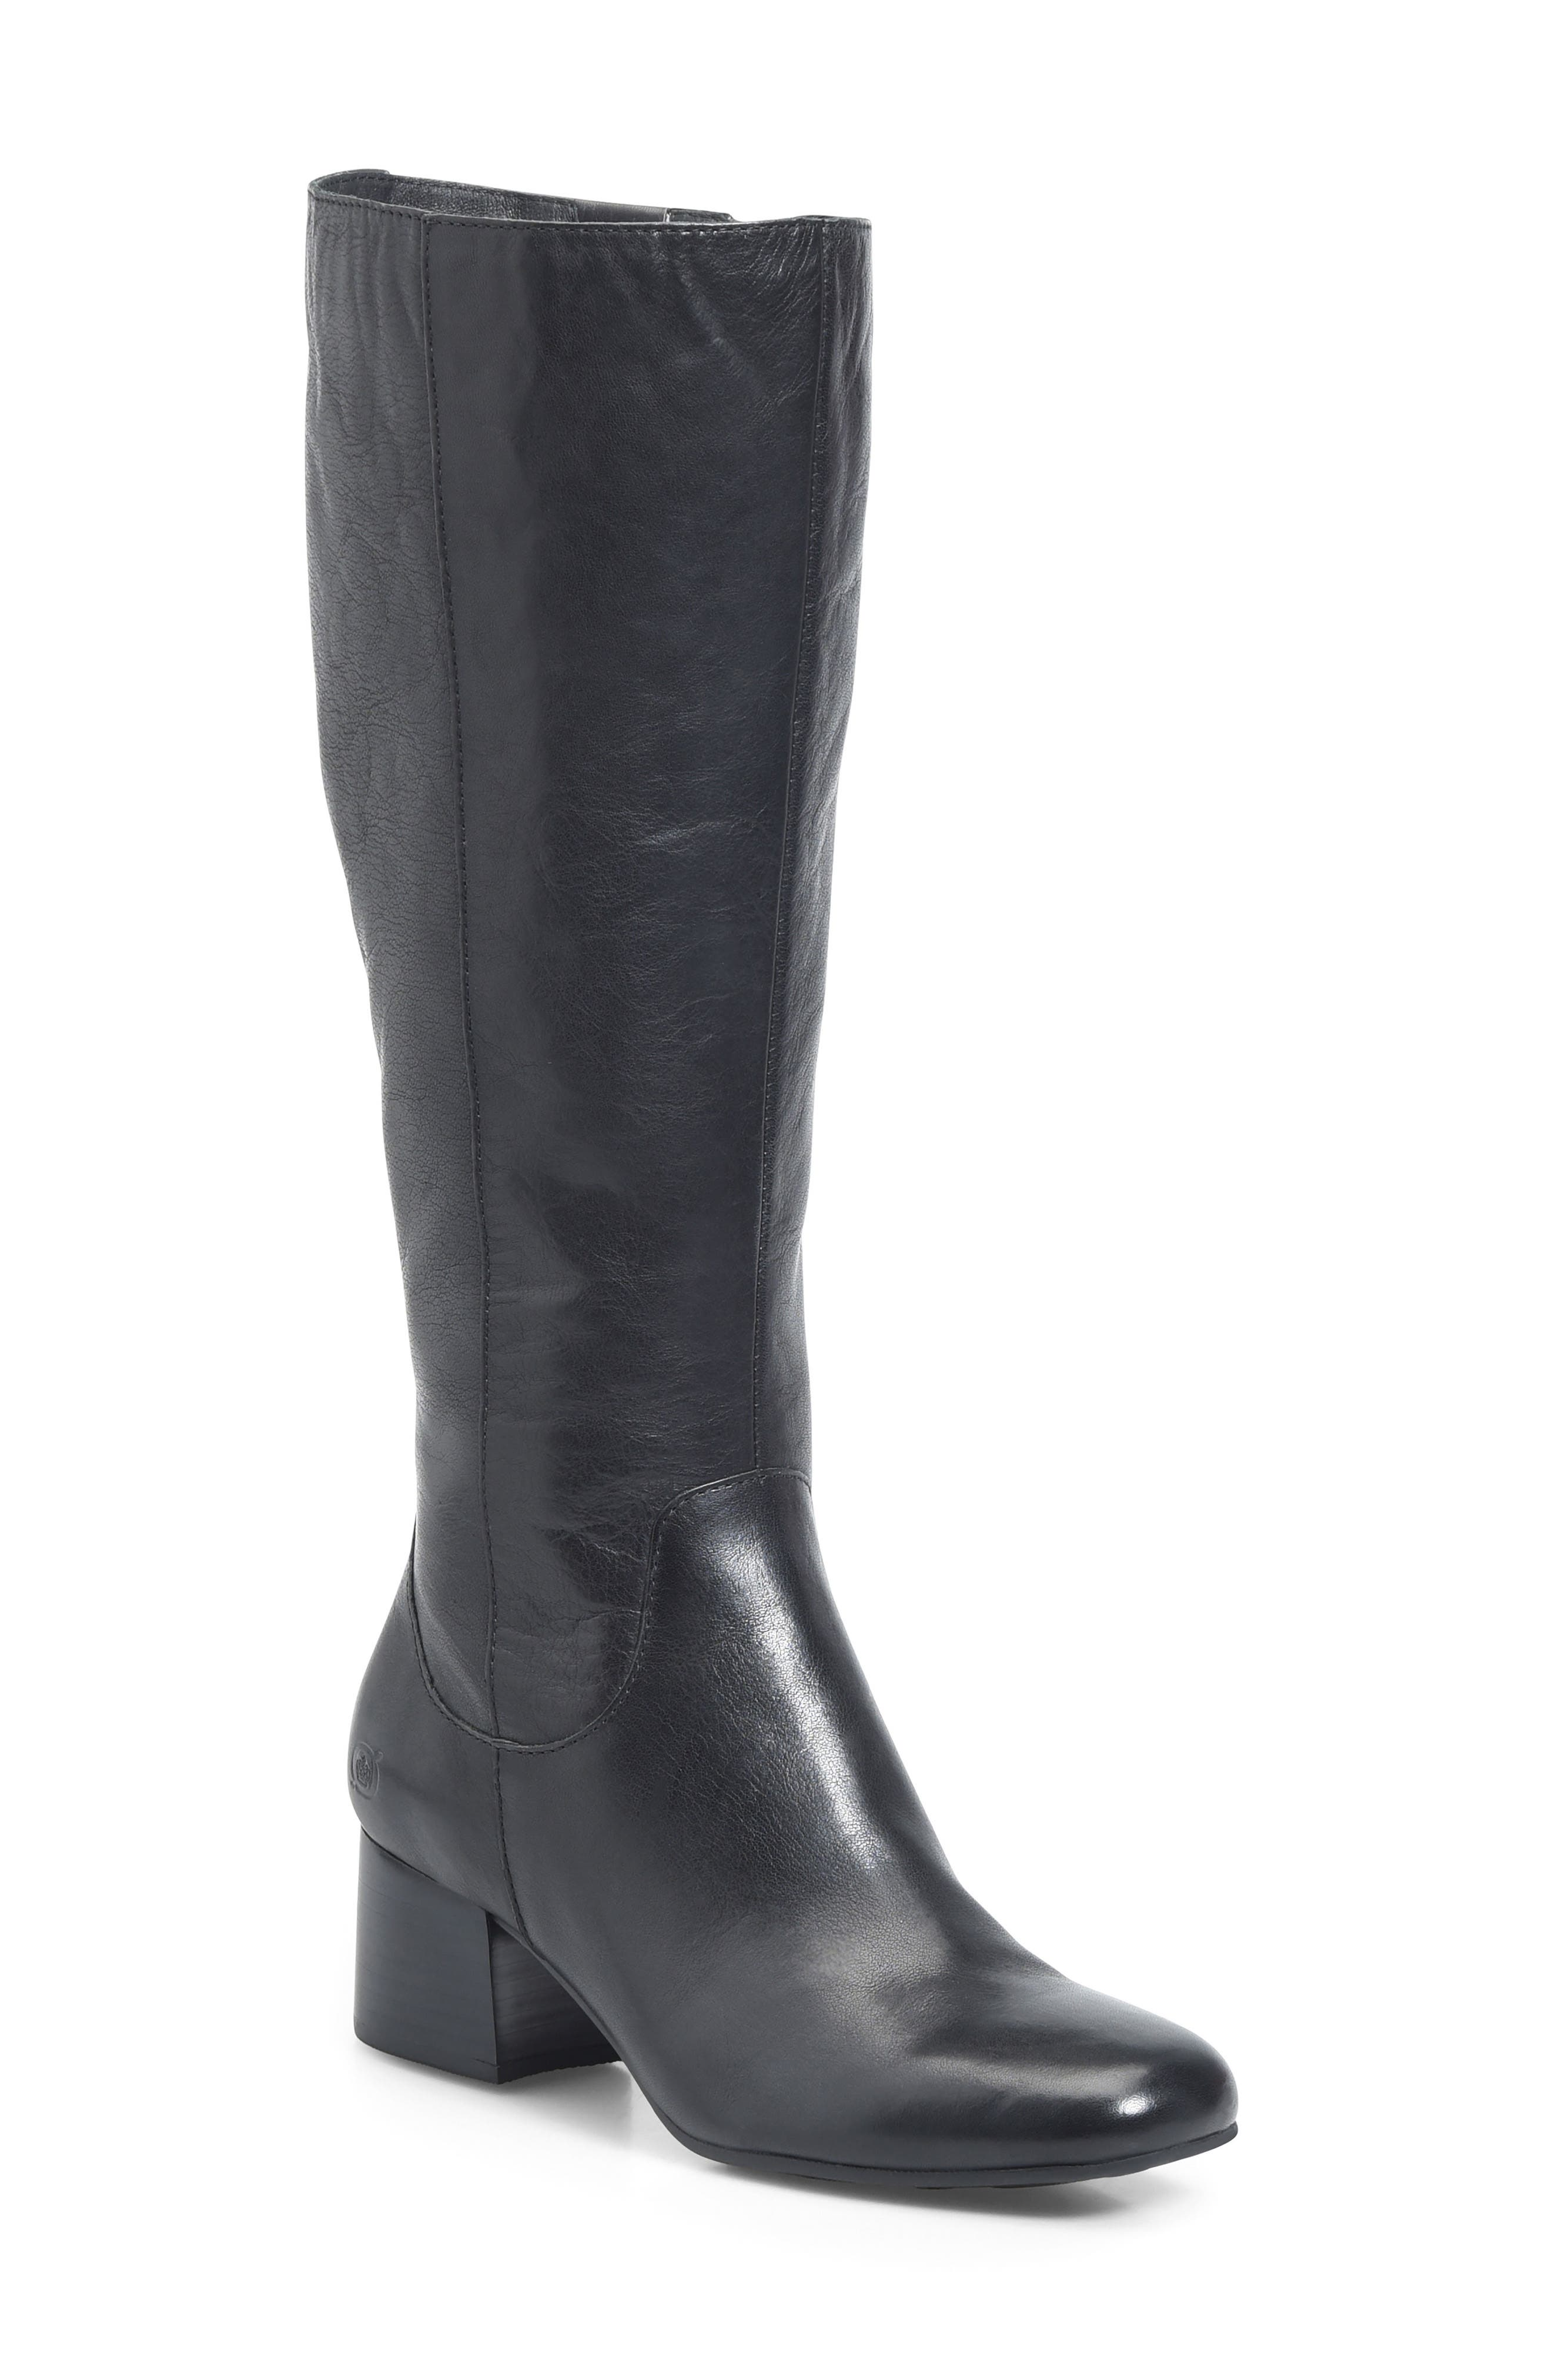 Avala Knee High Boot,                             Main thumbnail 1, color,                             Black Leather